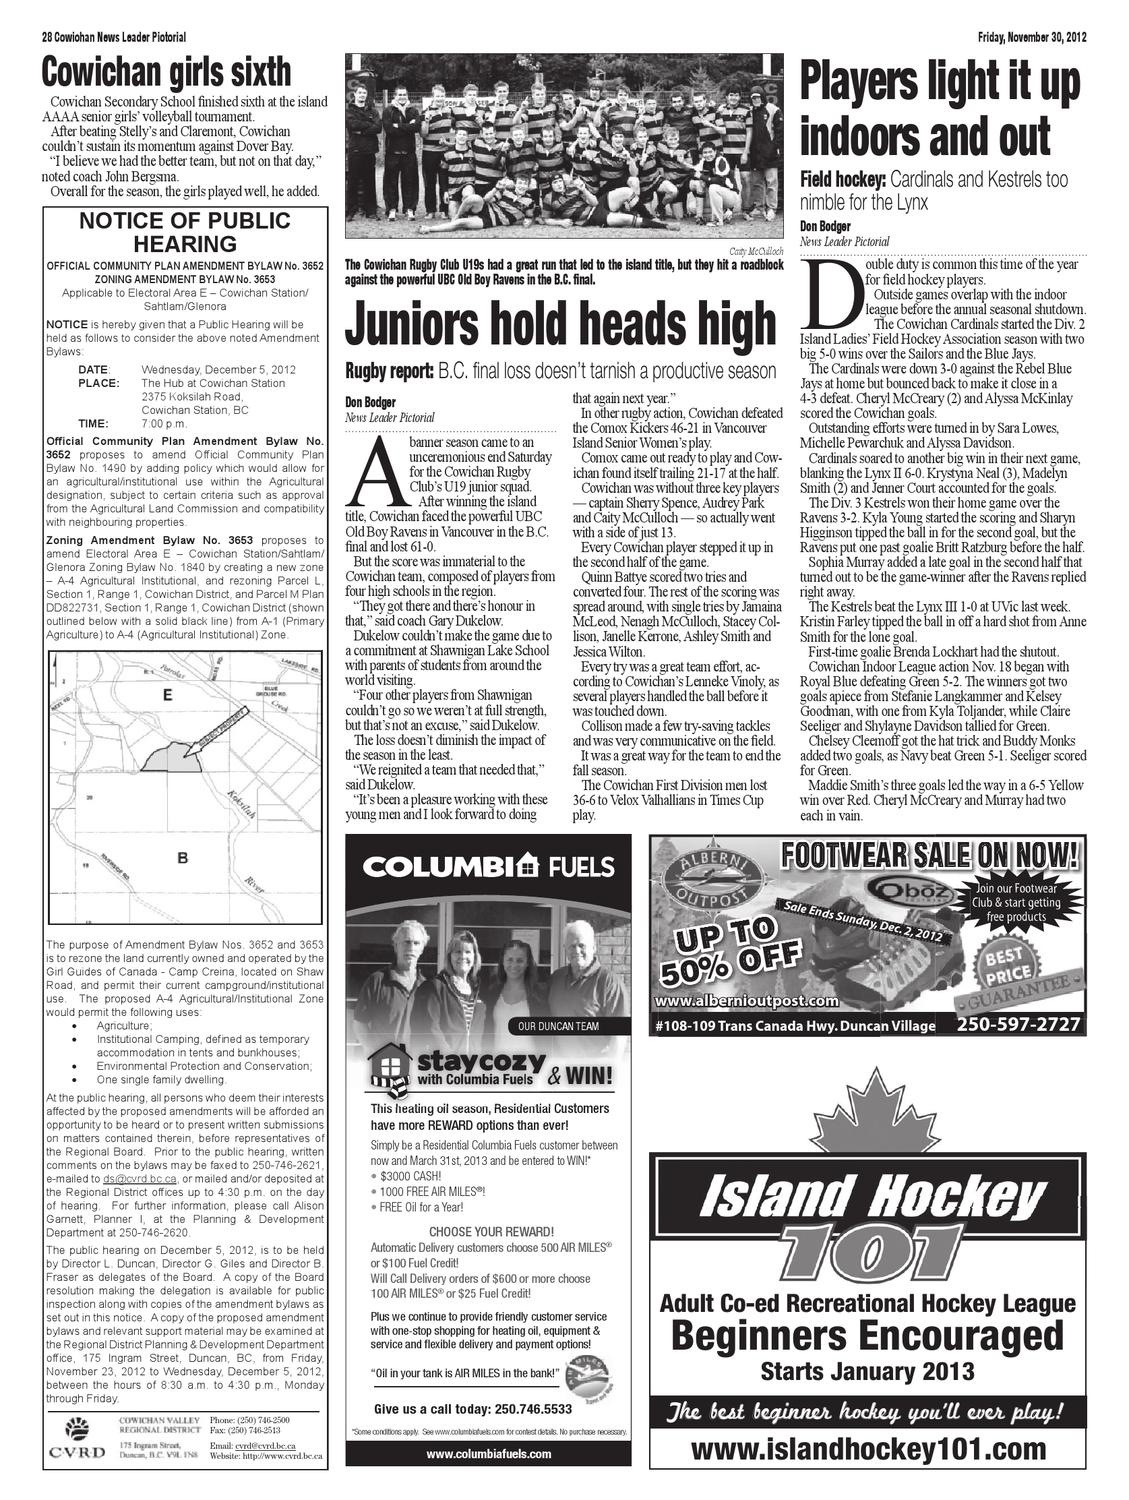 Cowichan News Leader Pictorial, November 30, 2012 by Black Press